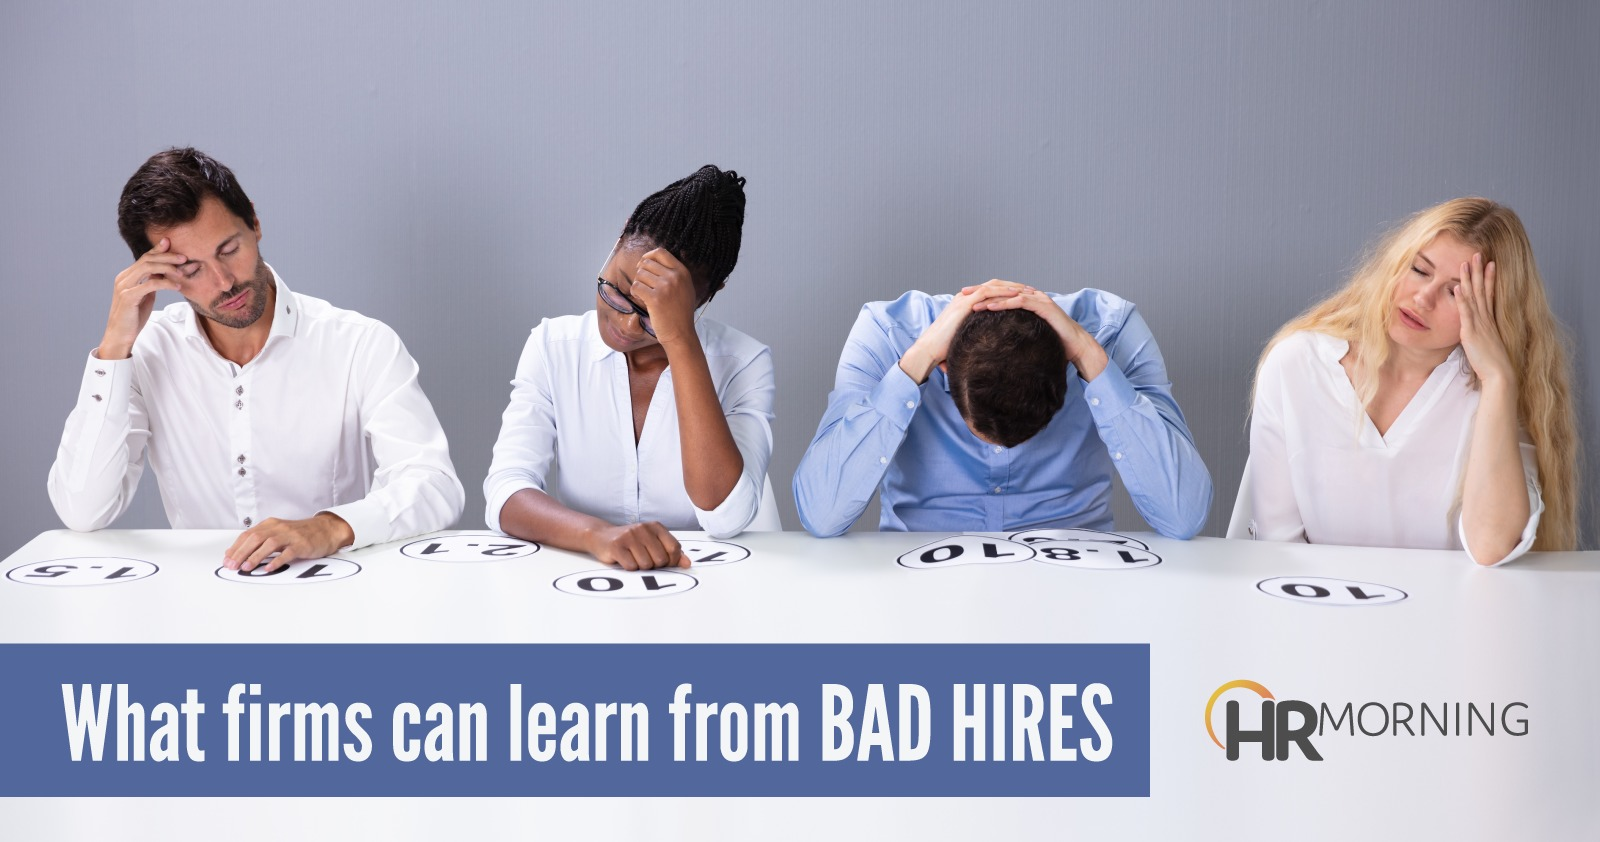 Hiring mistakes are valuable learning opportunities